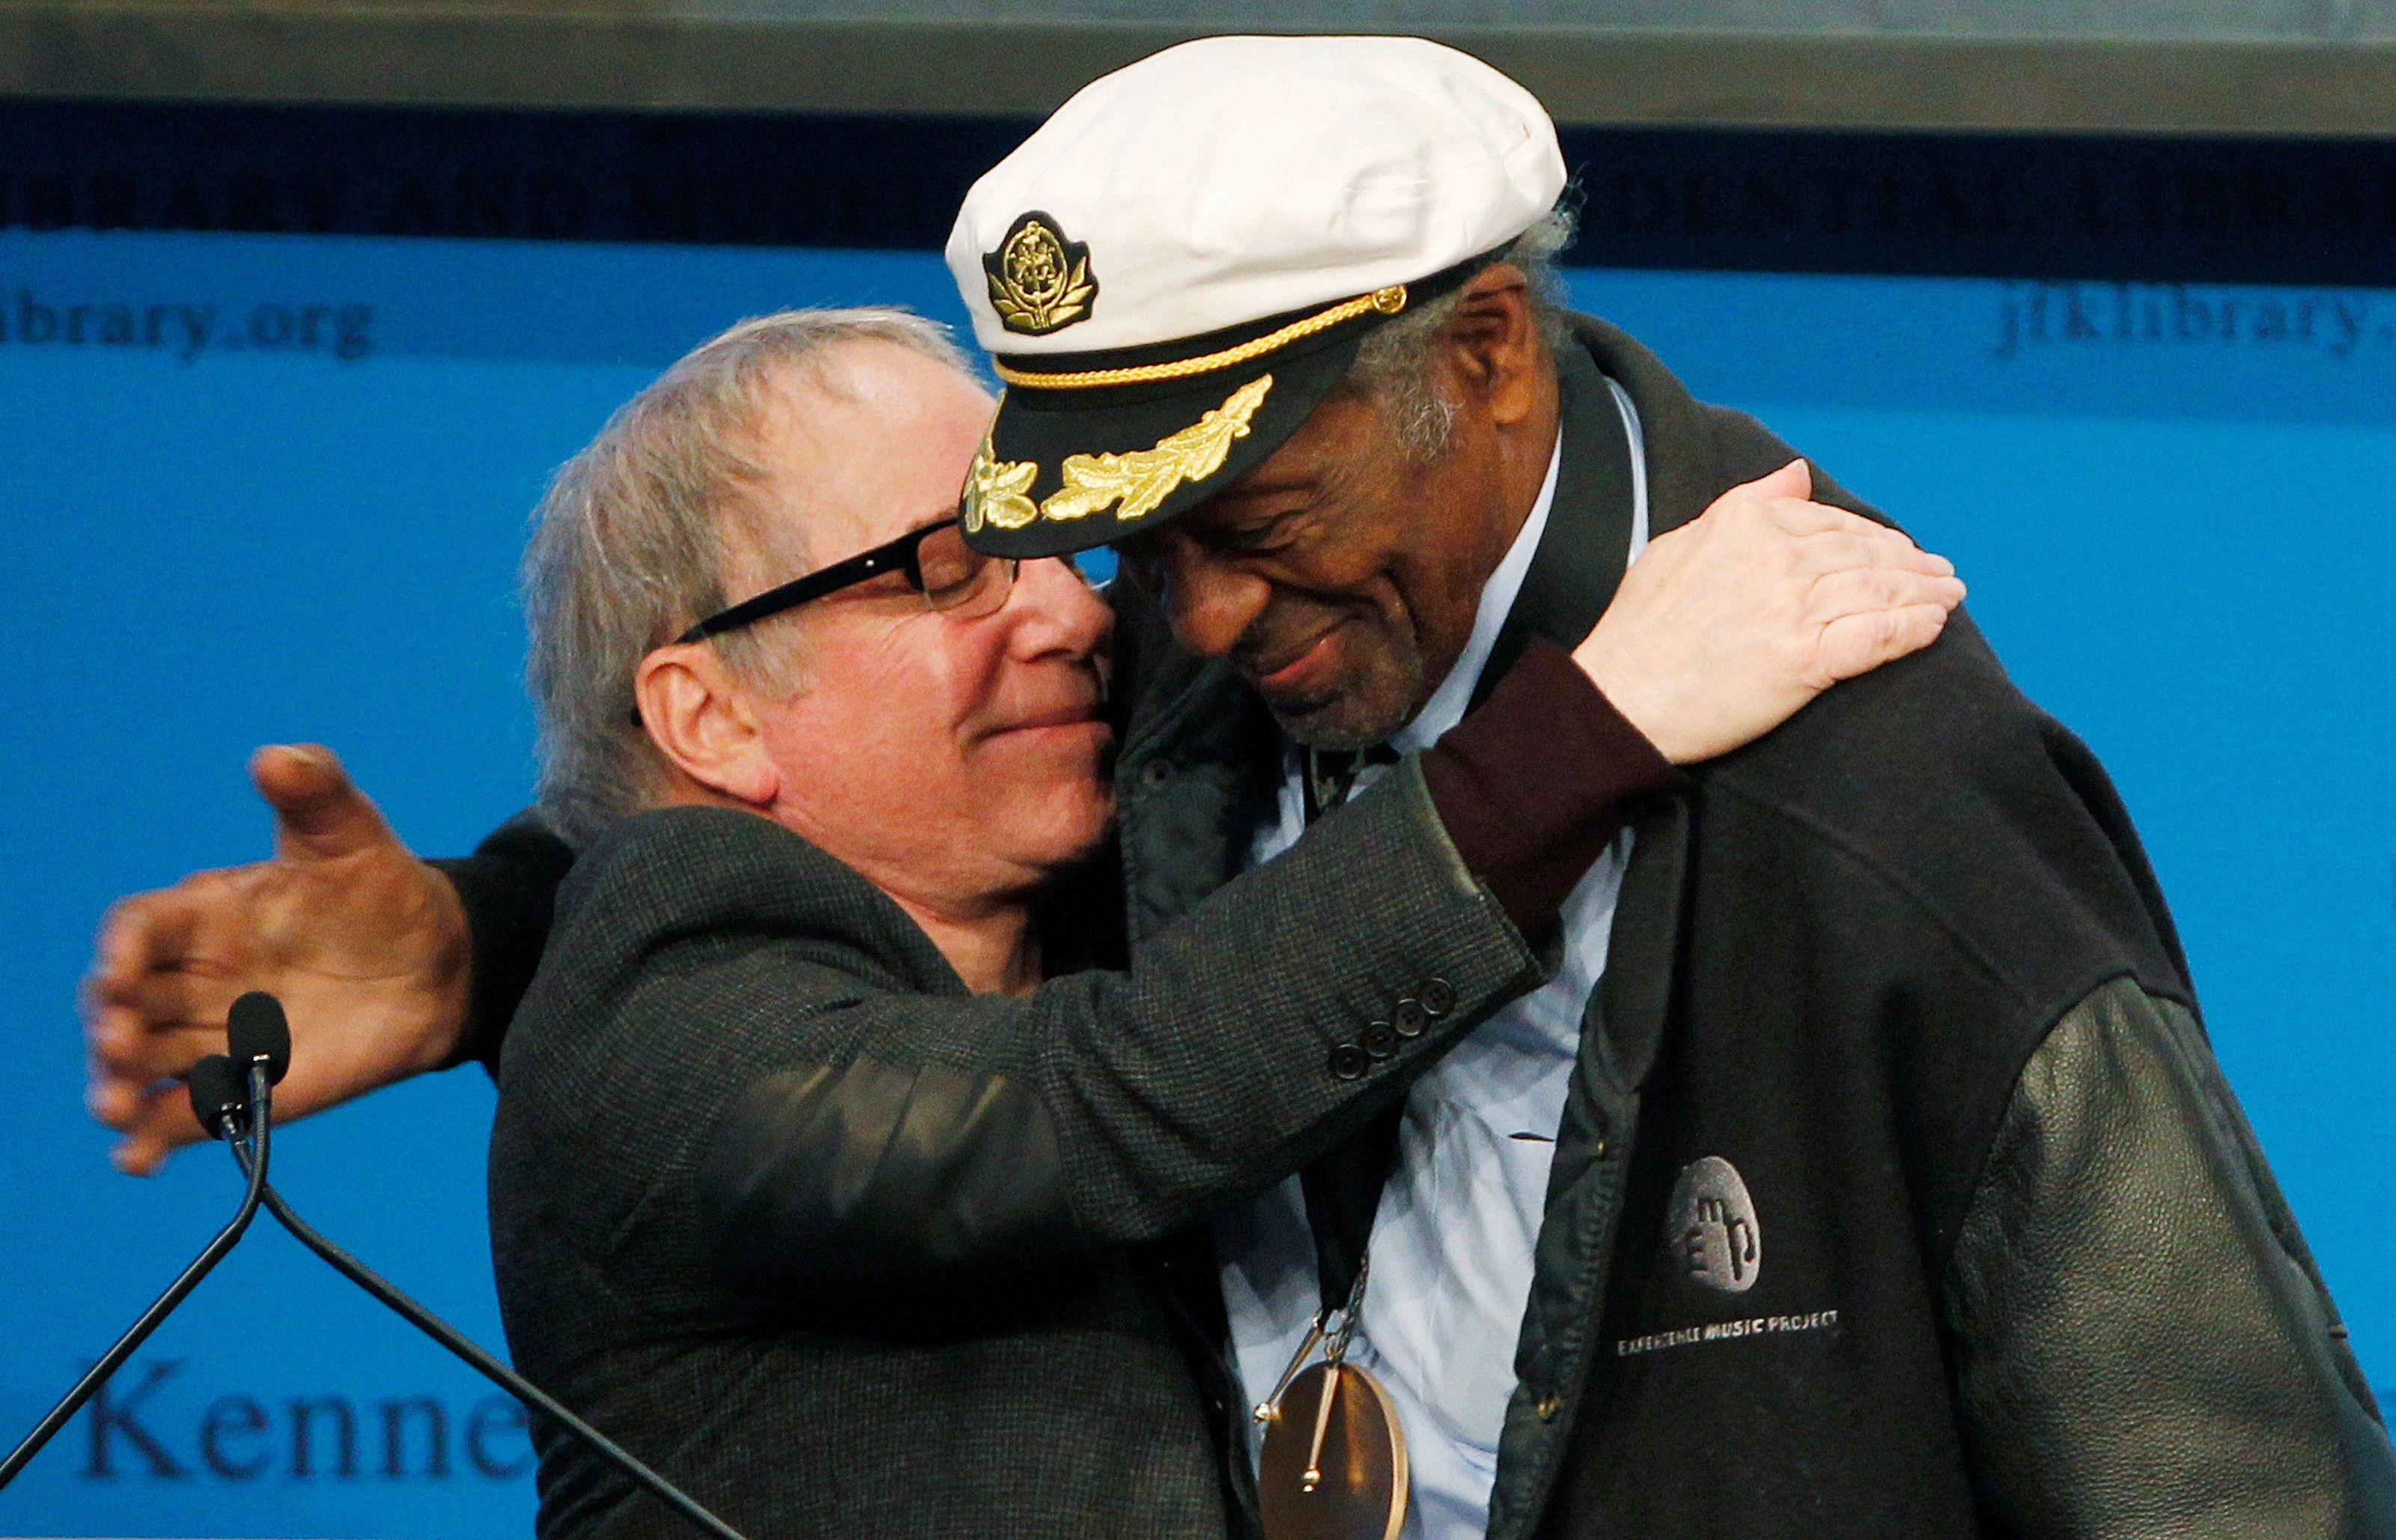 Musician Paul Simon (L) hugs Chuck Berry after presenting him with the 2012 Awards for Song Lyrics of Literary Excellence at the John F. S- Kennedy Presidential Library and Museum in Boston, Massachusetts February 26, 2012. REUTERS/Jessica Rinaldi (UNITED STATES - Tags: ENTERTAINMENT)